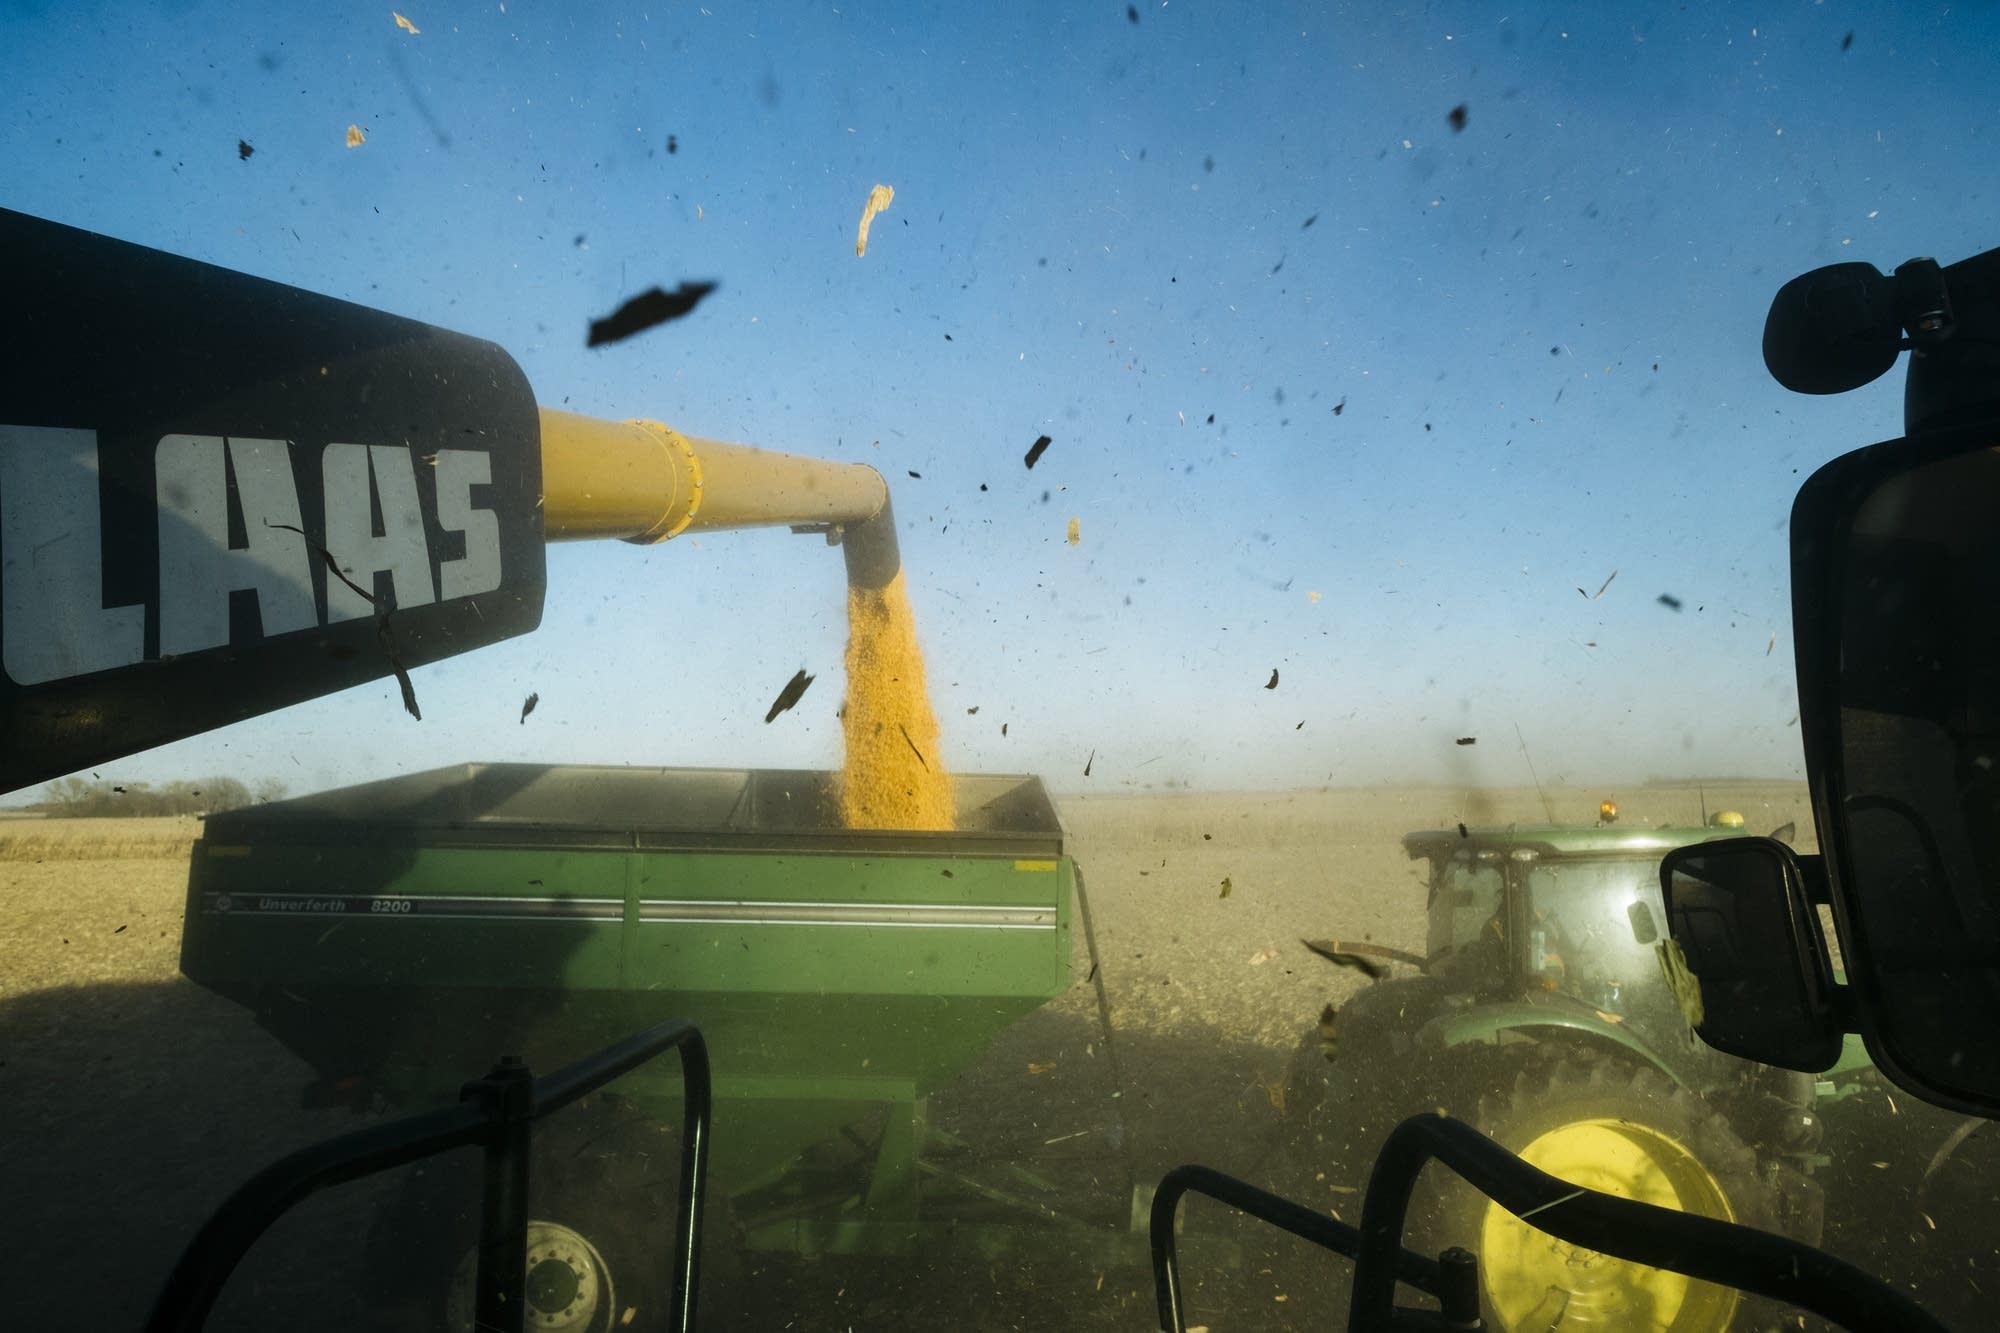 Debris flies through the air as corn is transferred to a tractor.